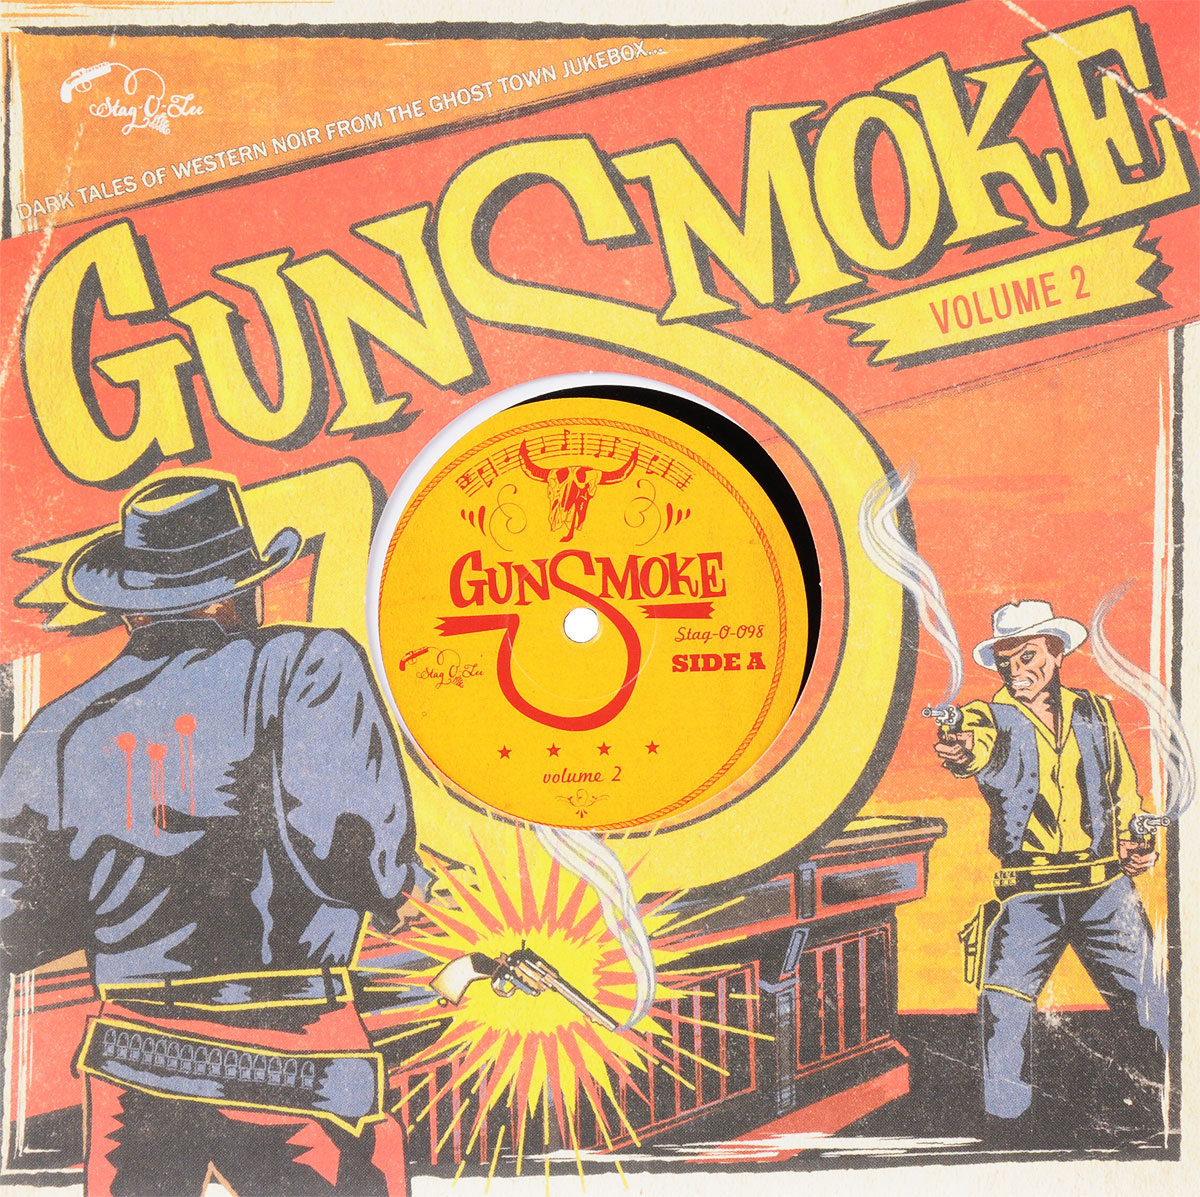 Gunsmoke Vol. 2 - Dark Tales Of Western Noir From The Ghost Town Jukebox (LP) port noir port noir   any way the wind carries  2 lp